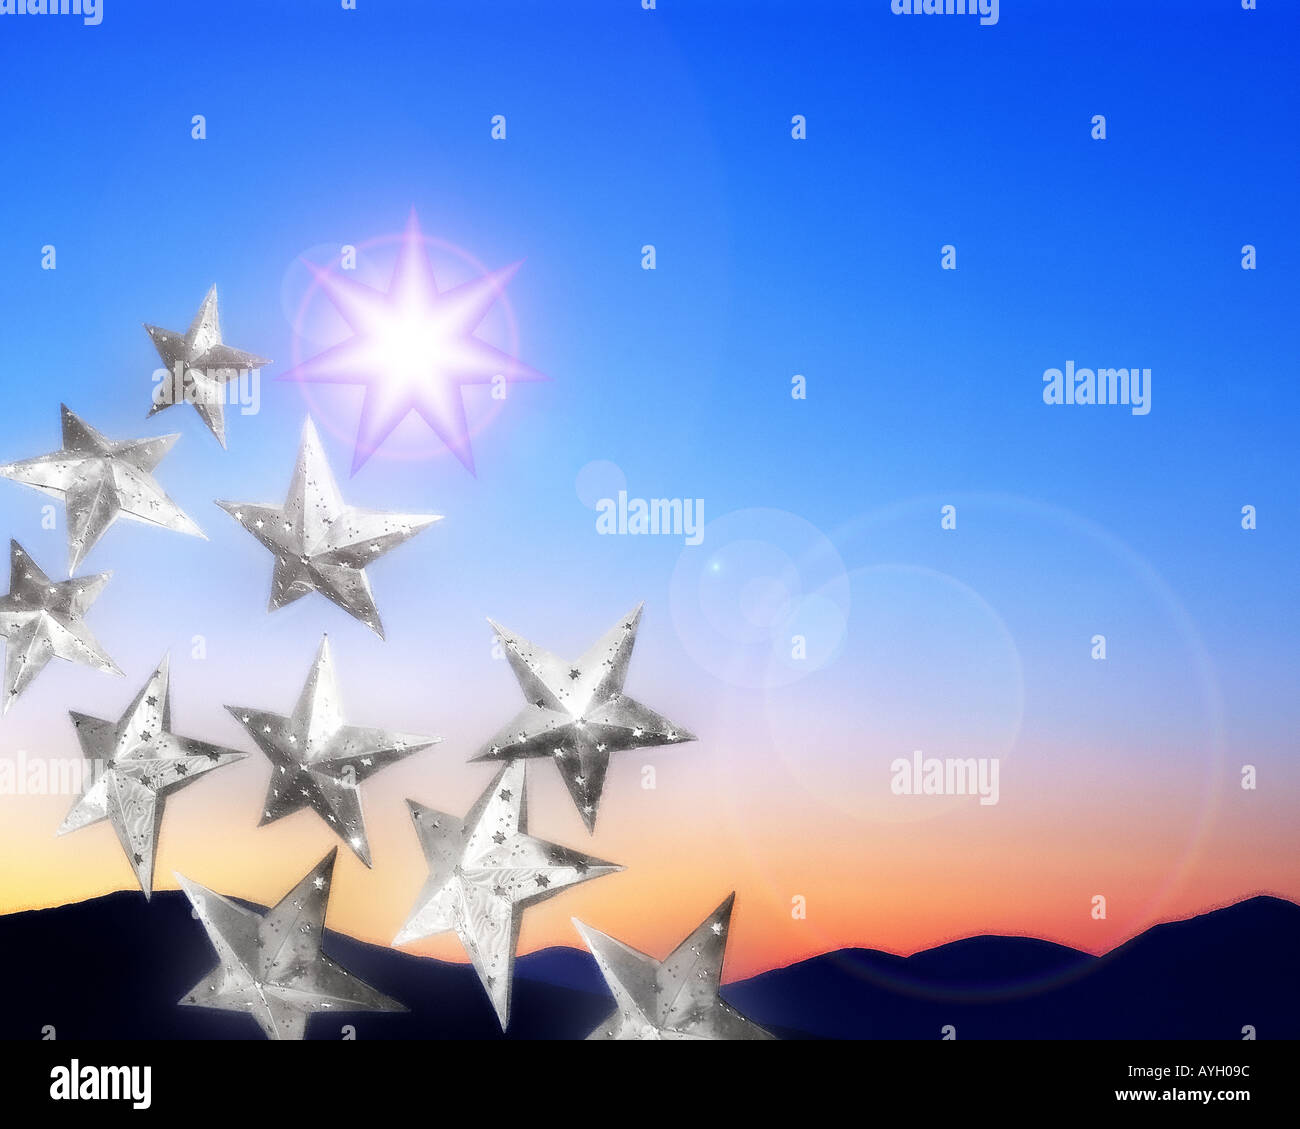 DIGITAL ART: Christmas Design - Stock Image